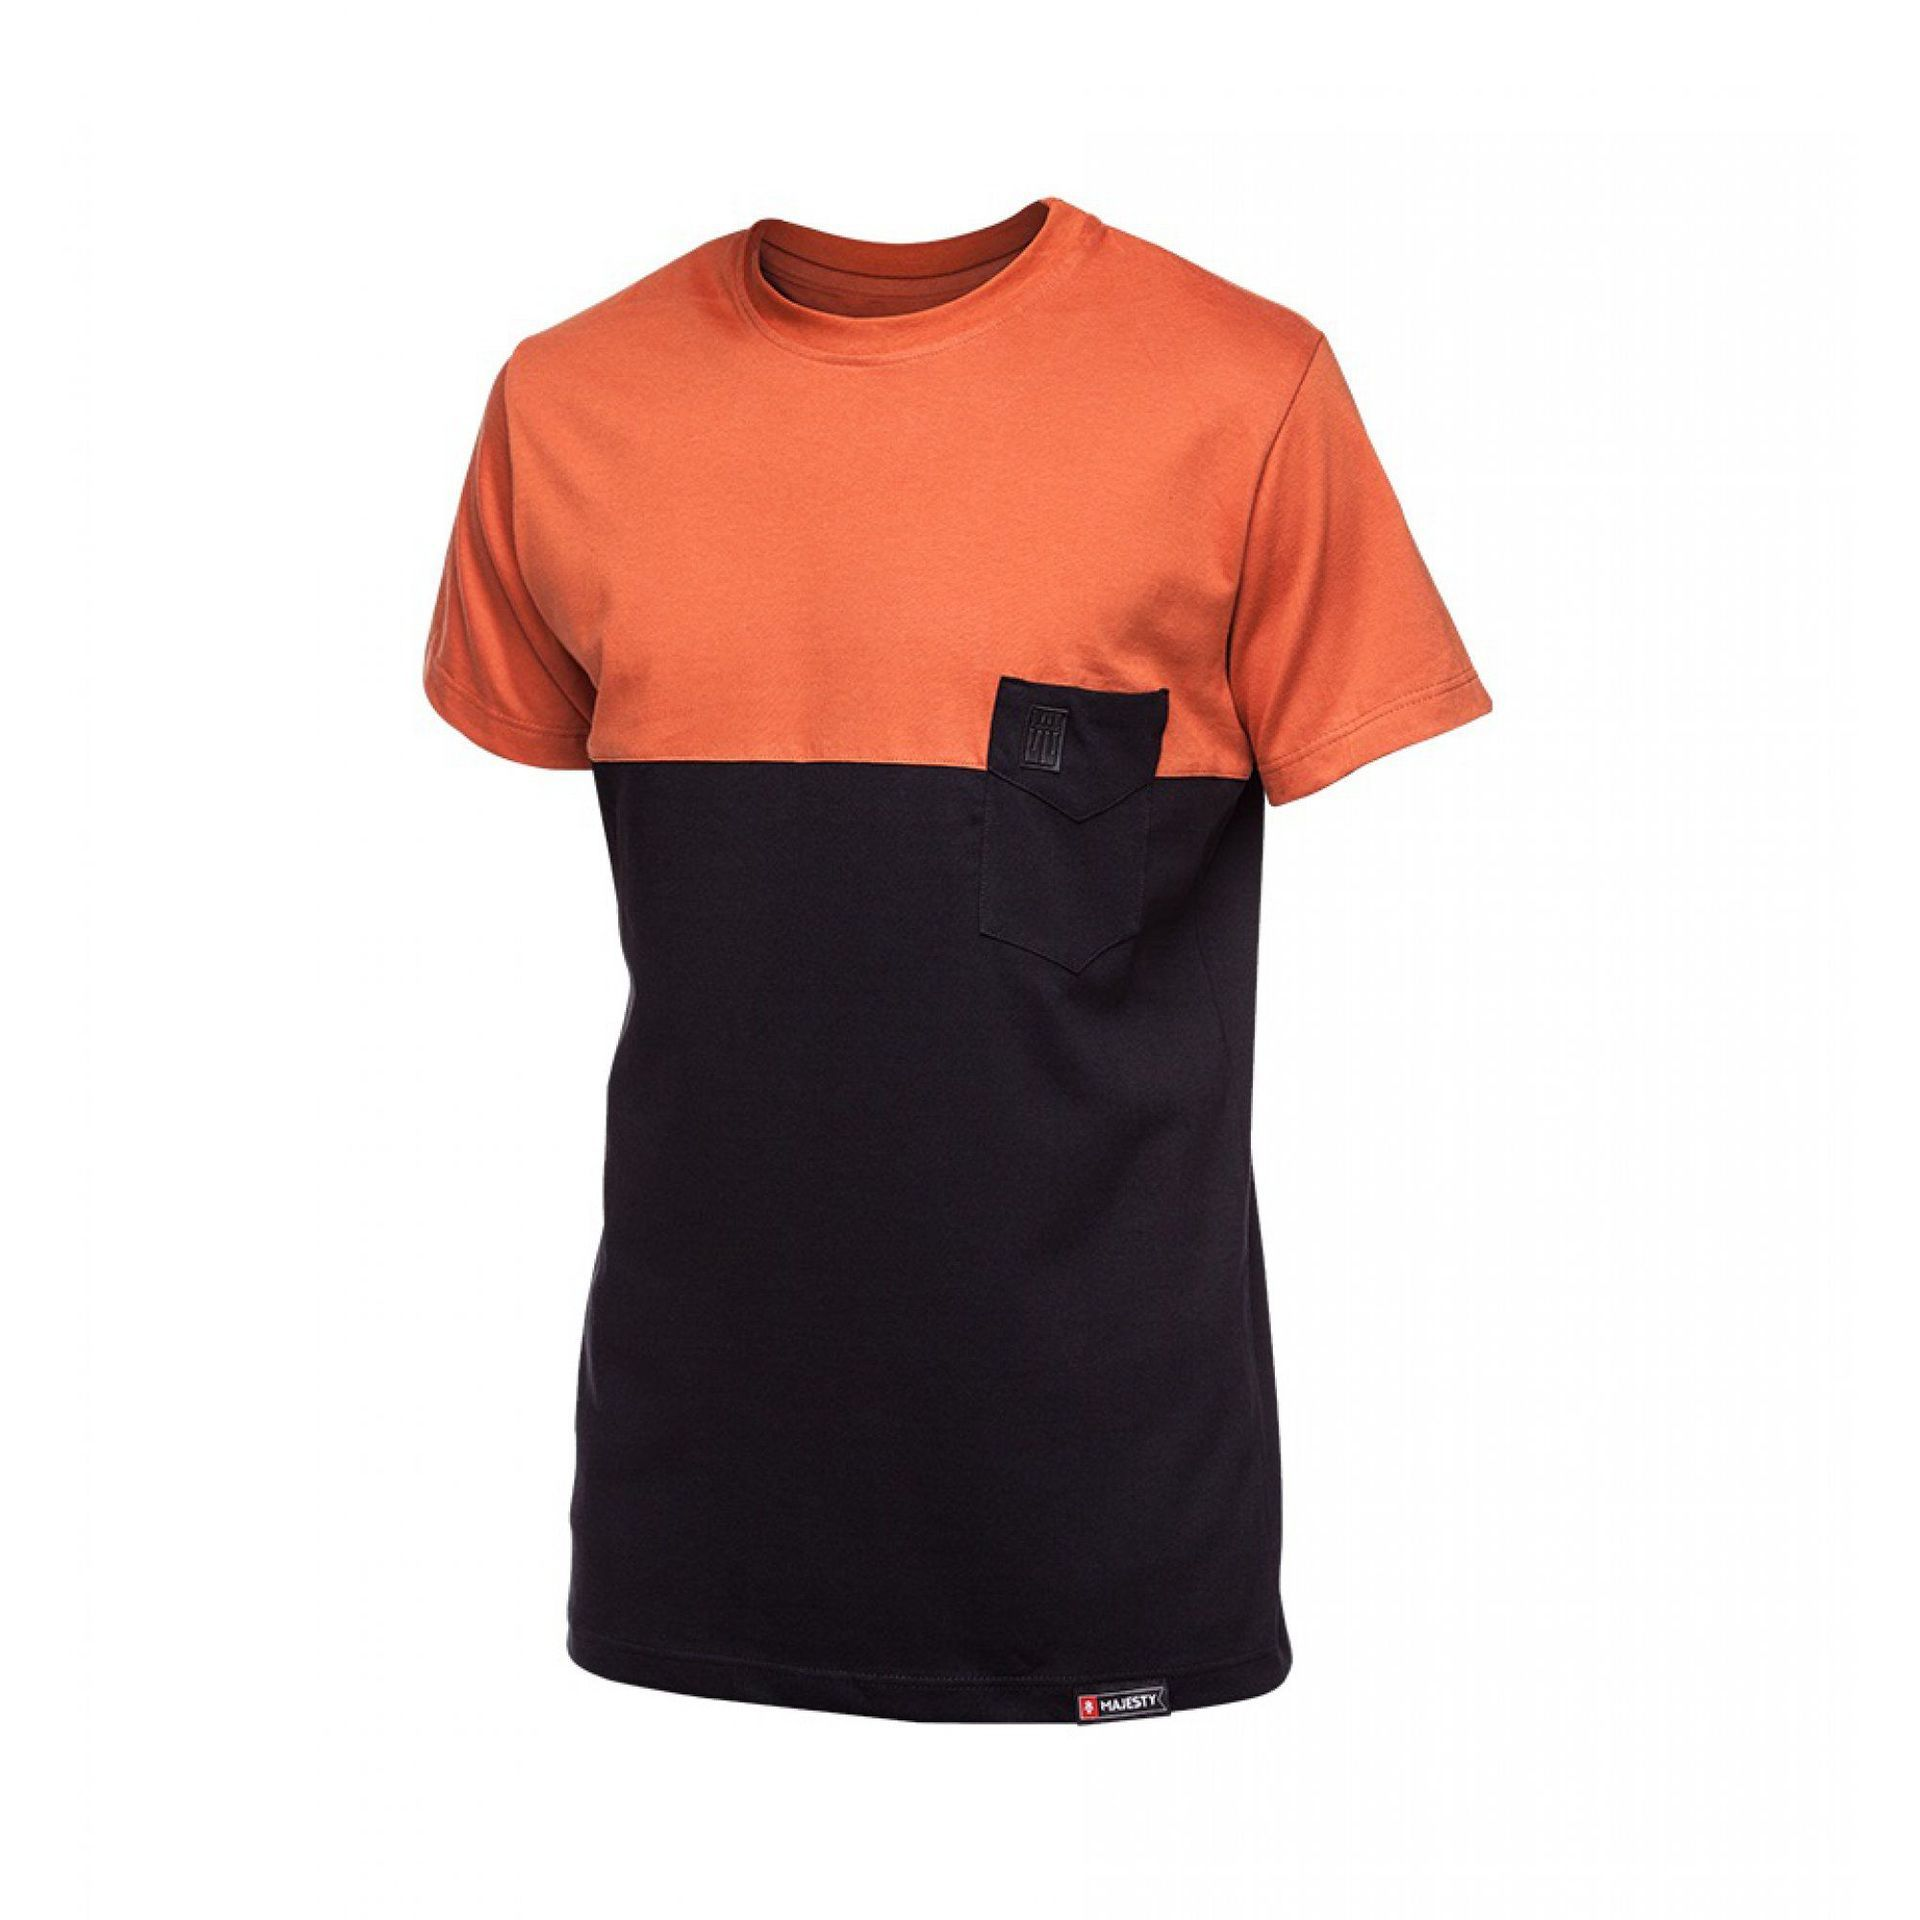 T-SHIRT MAJESTY DOPPLER RUST|BLACK